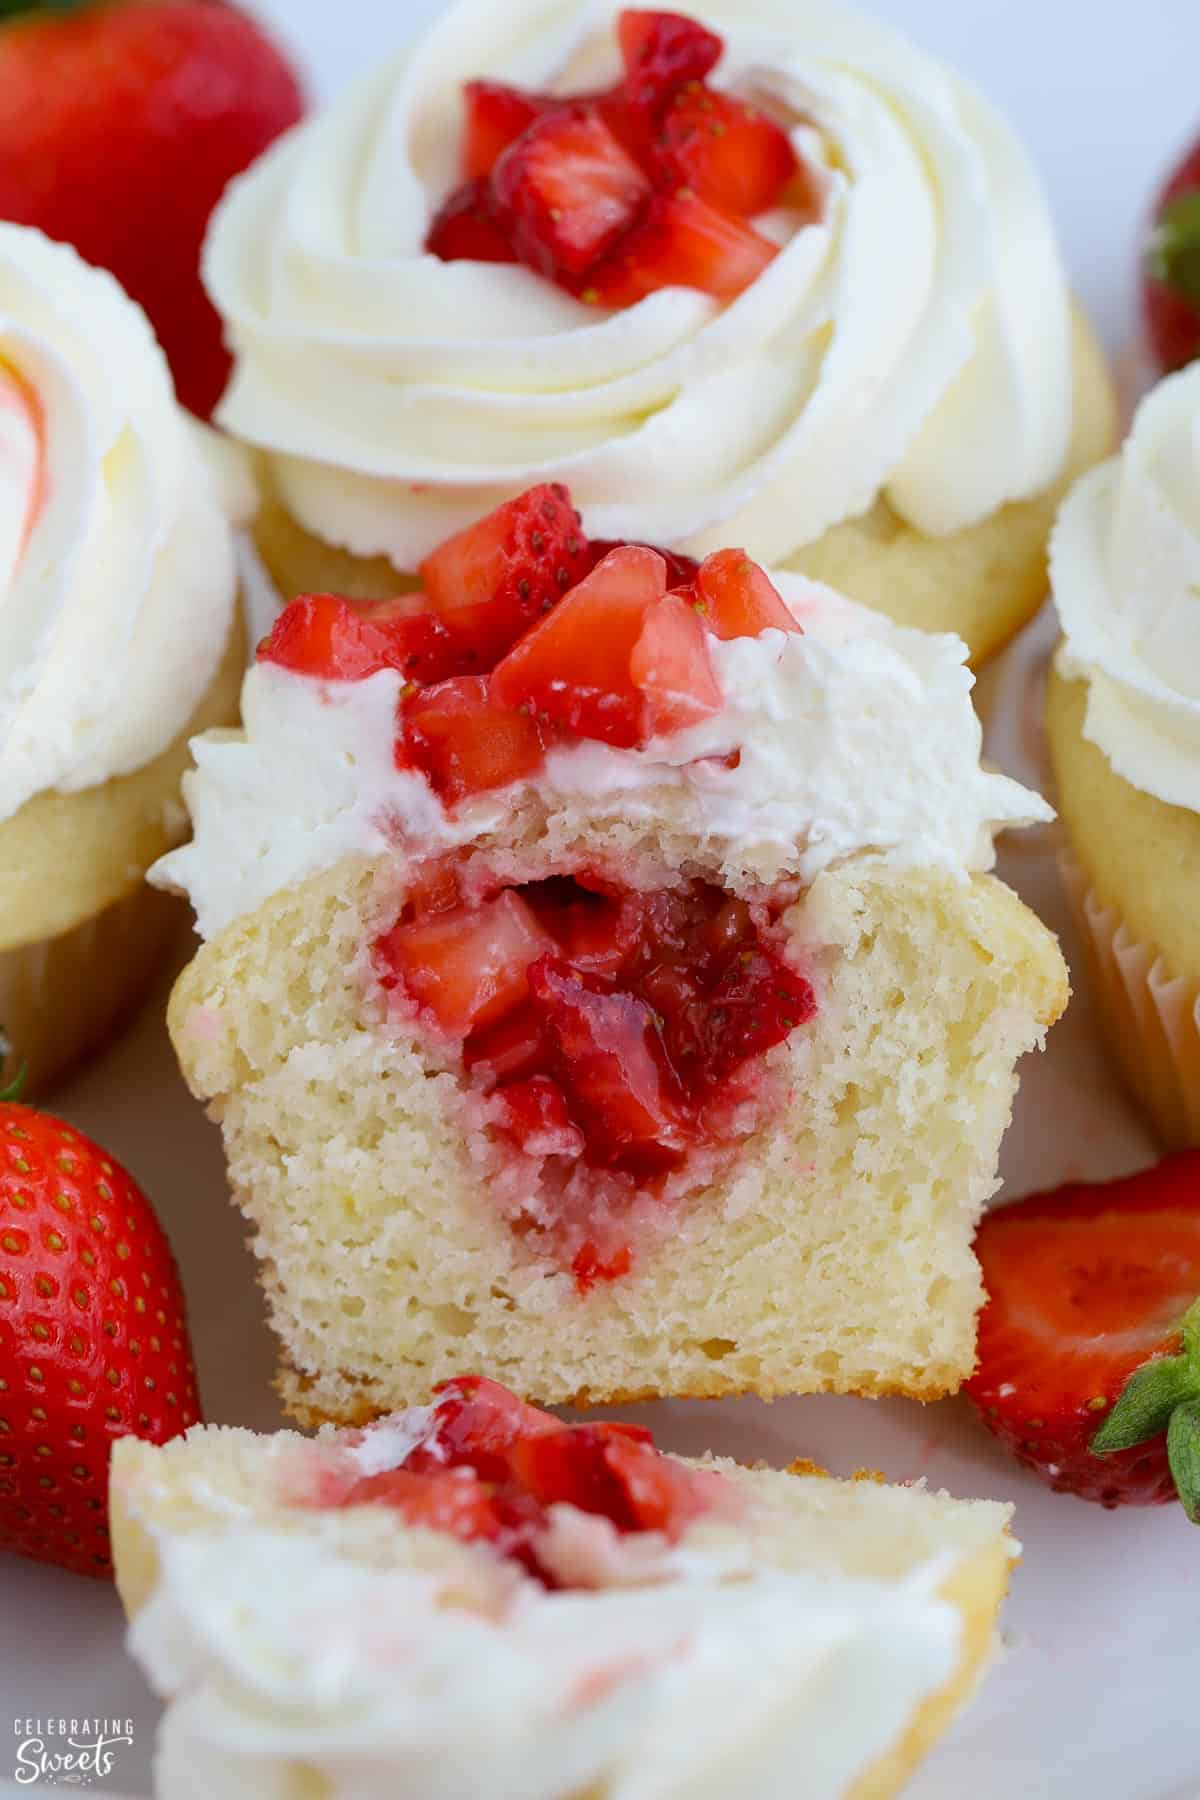 Vanilla cupcake cut in half with diced strawberries inside the cupcake.